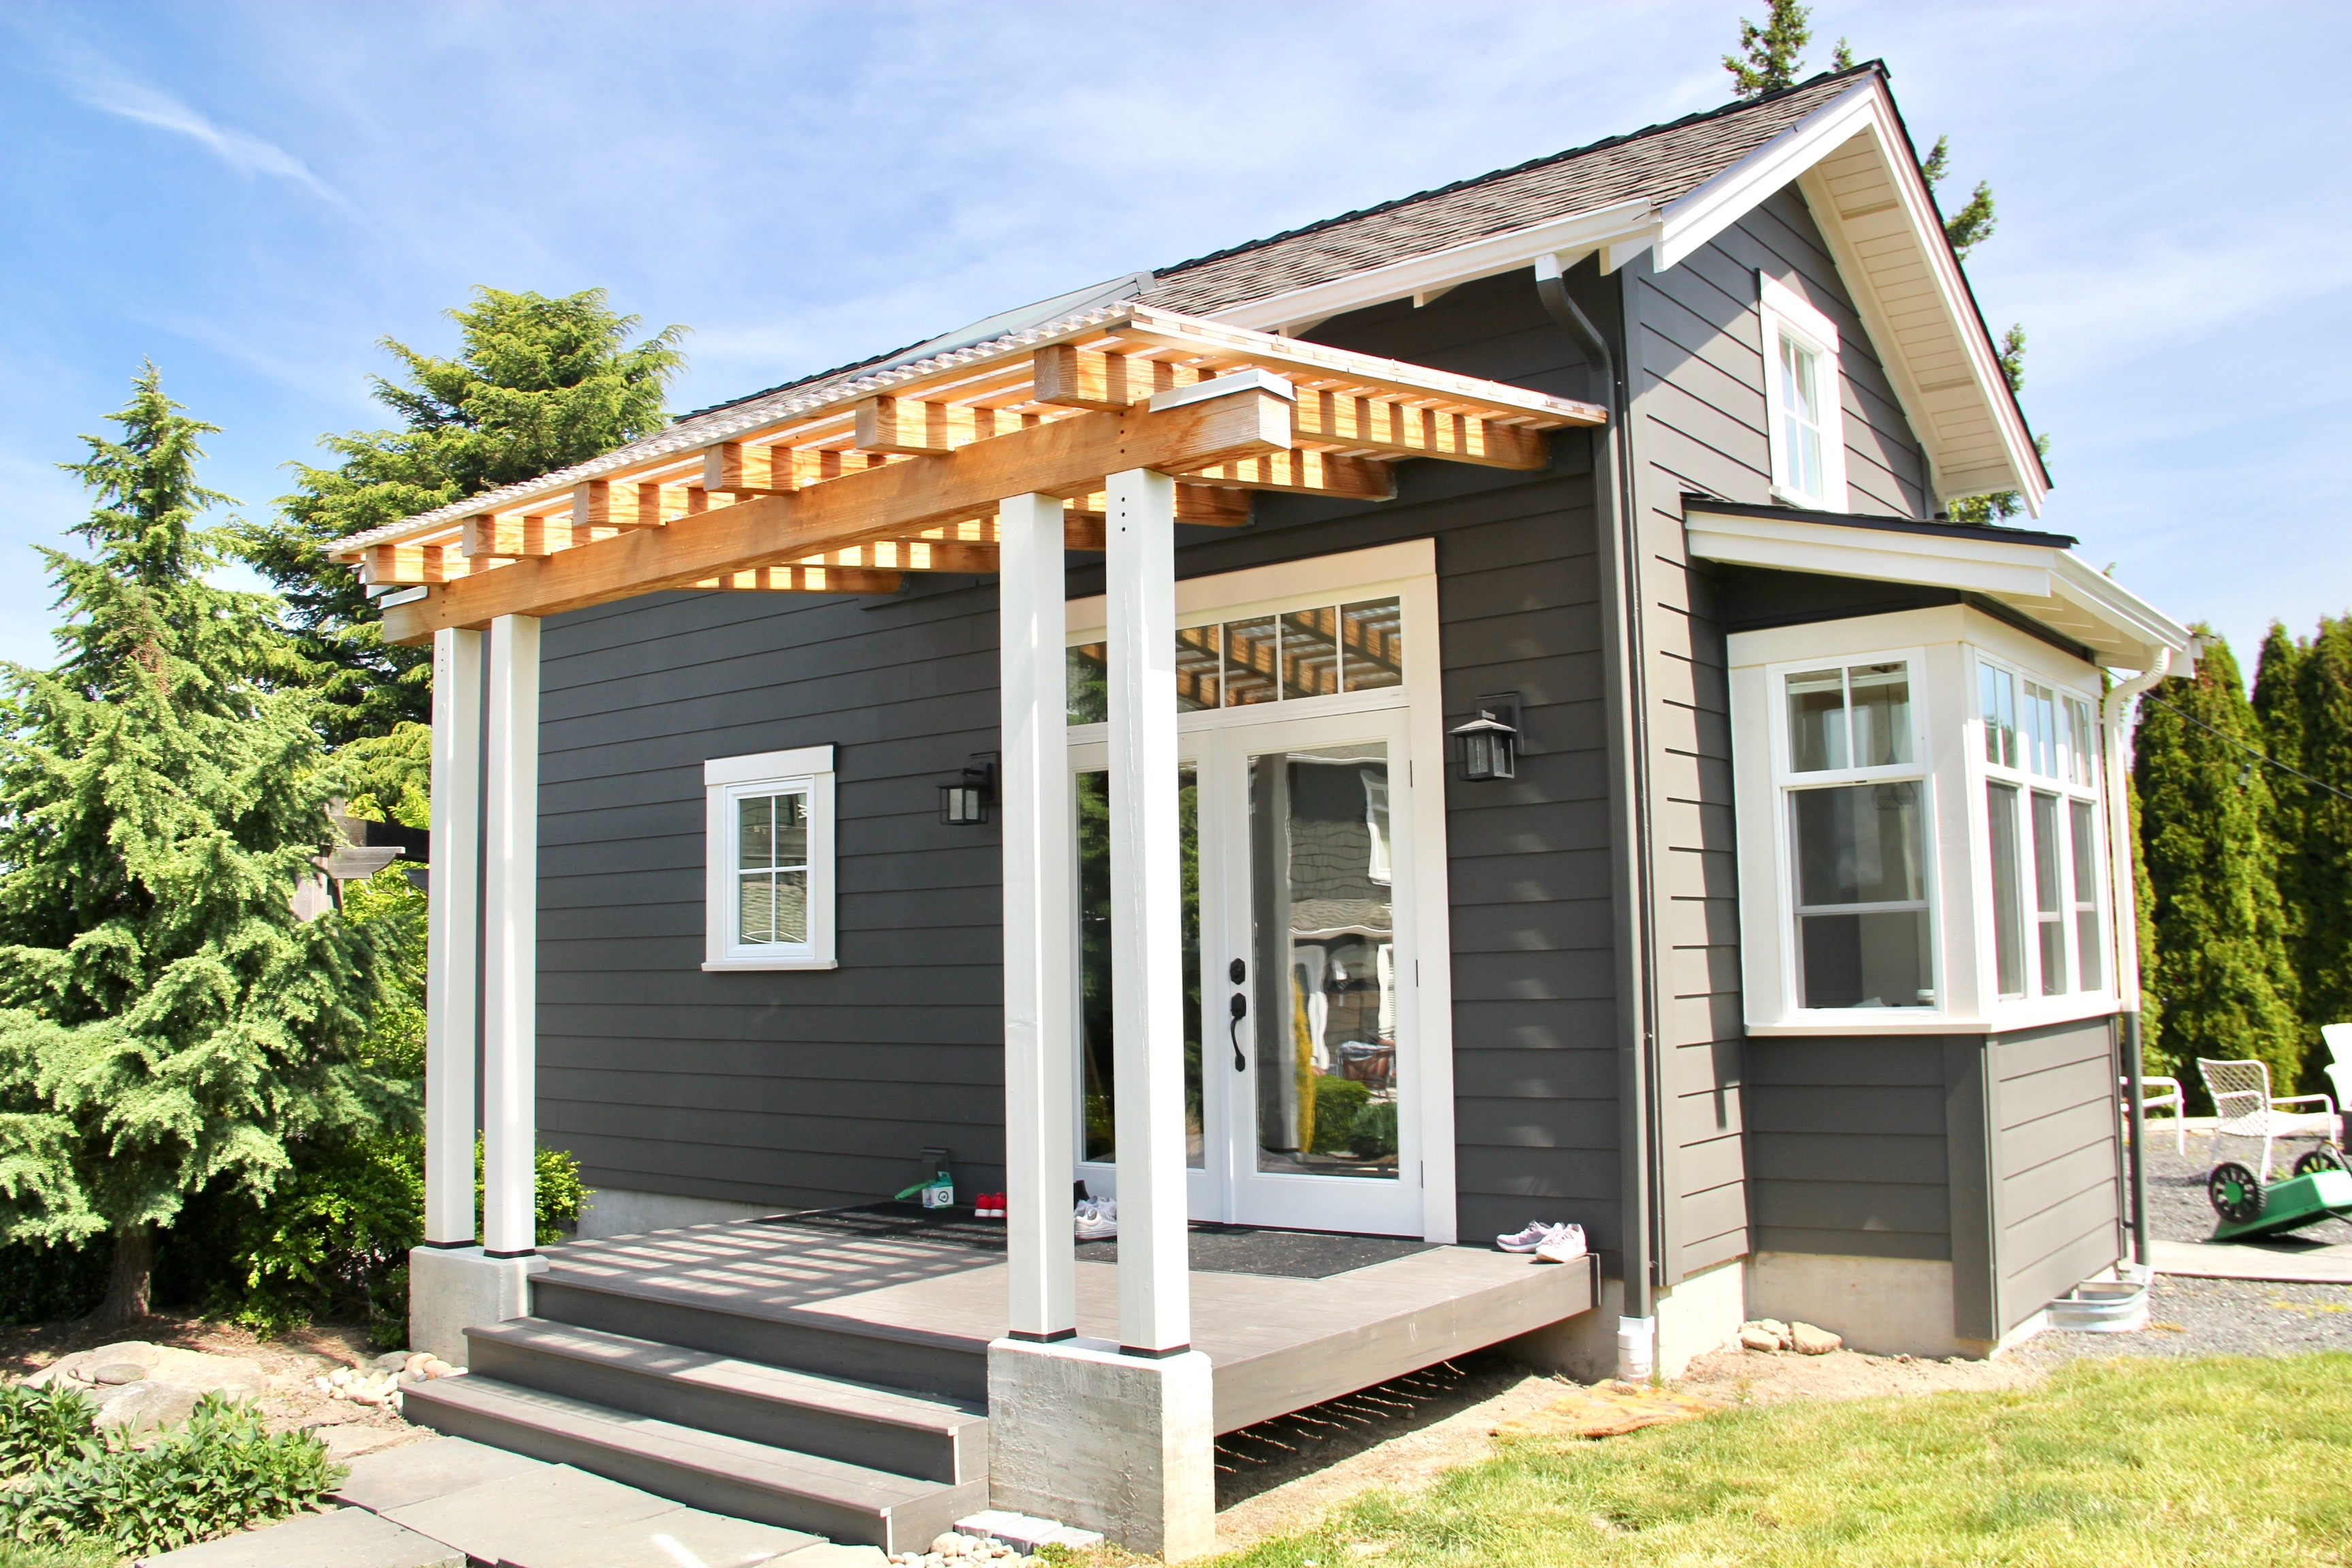 Lakeview Tiny House DADU-04